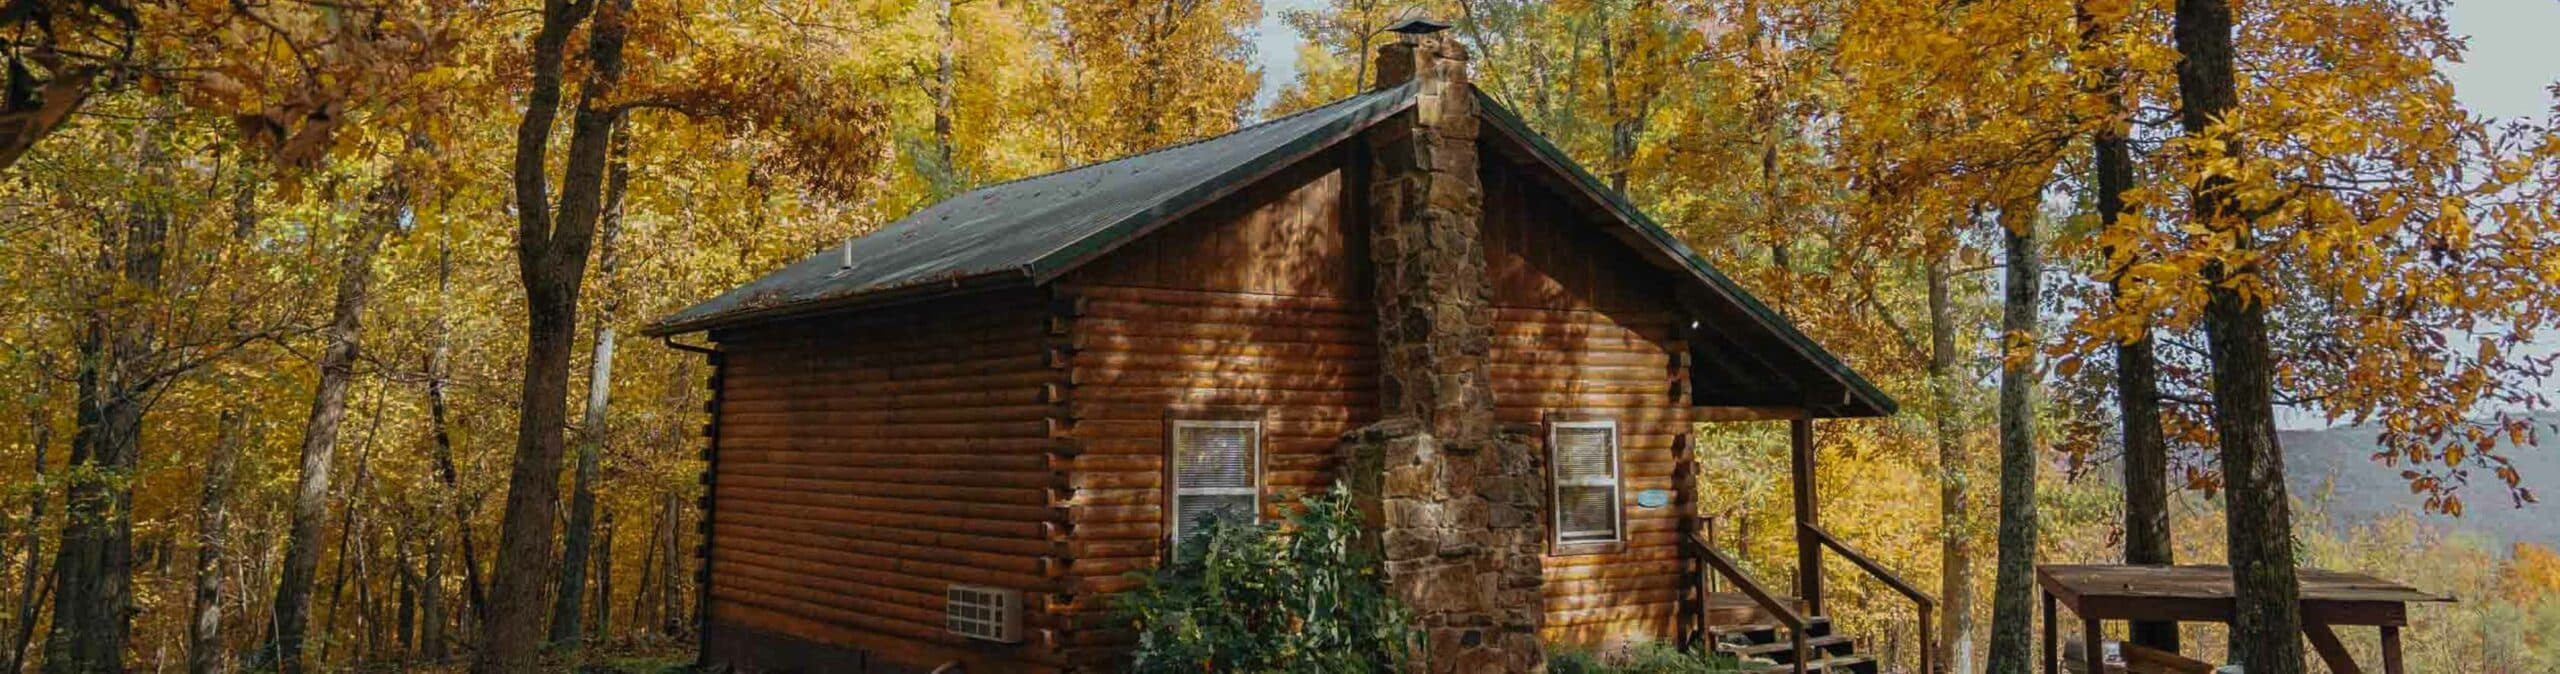 exterior cabin in fall